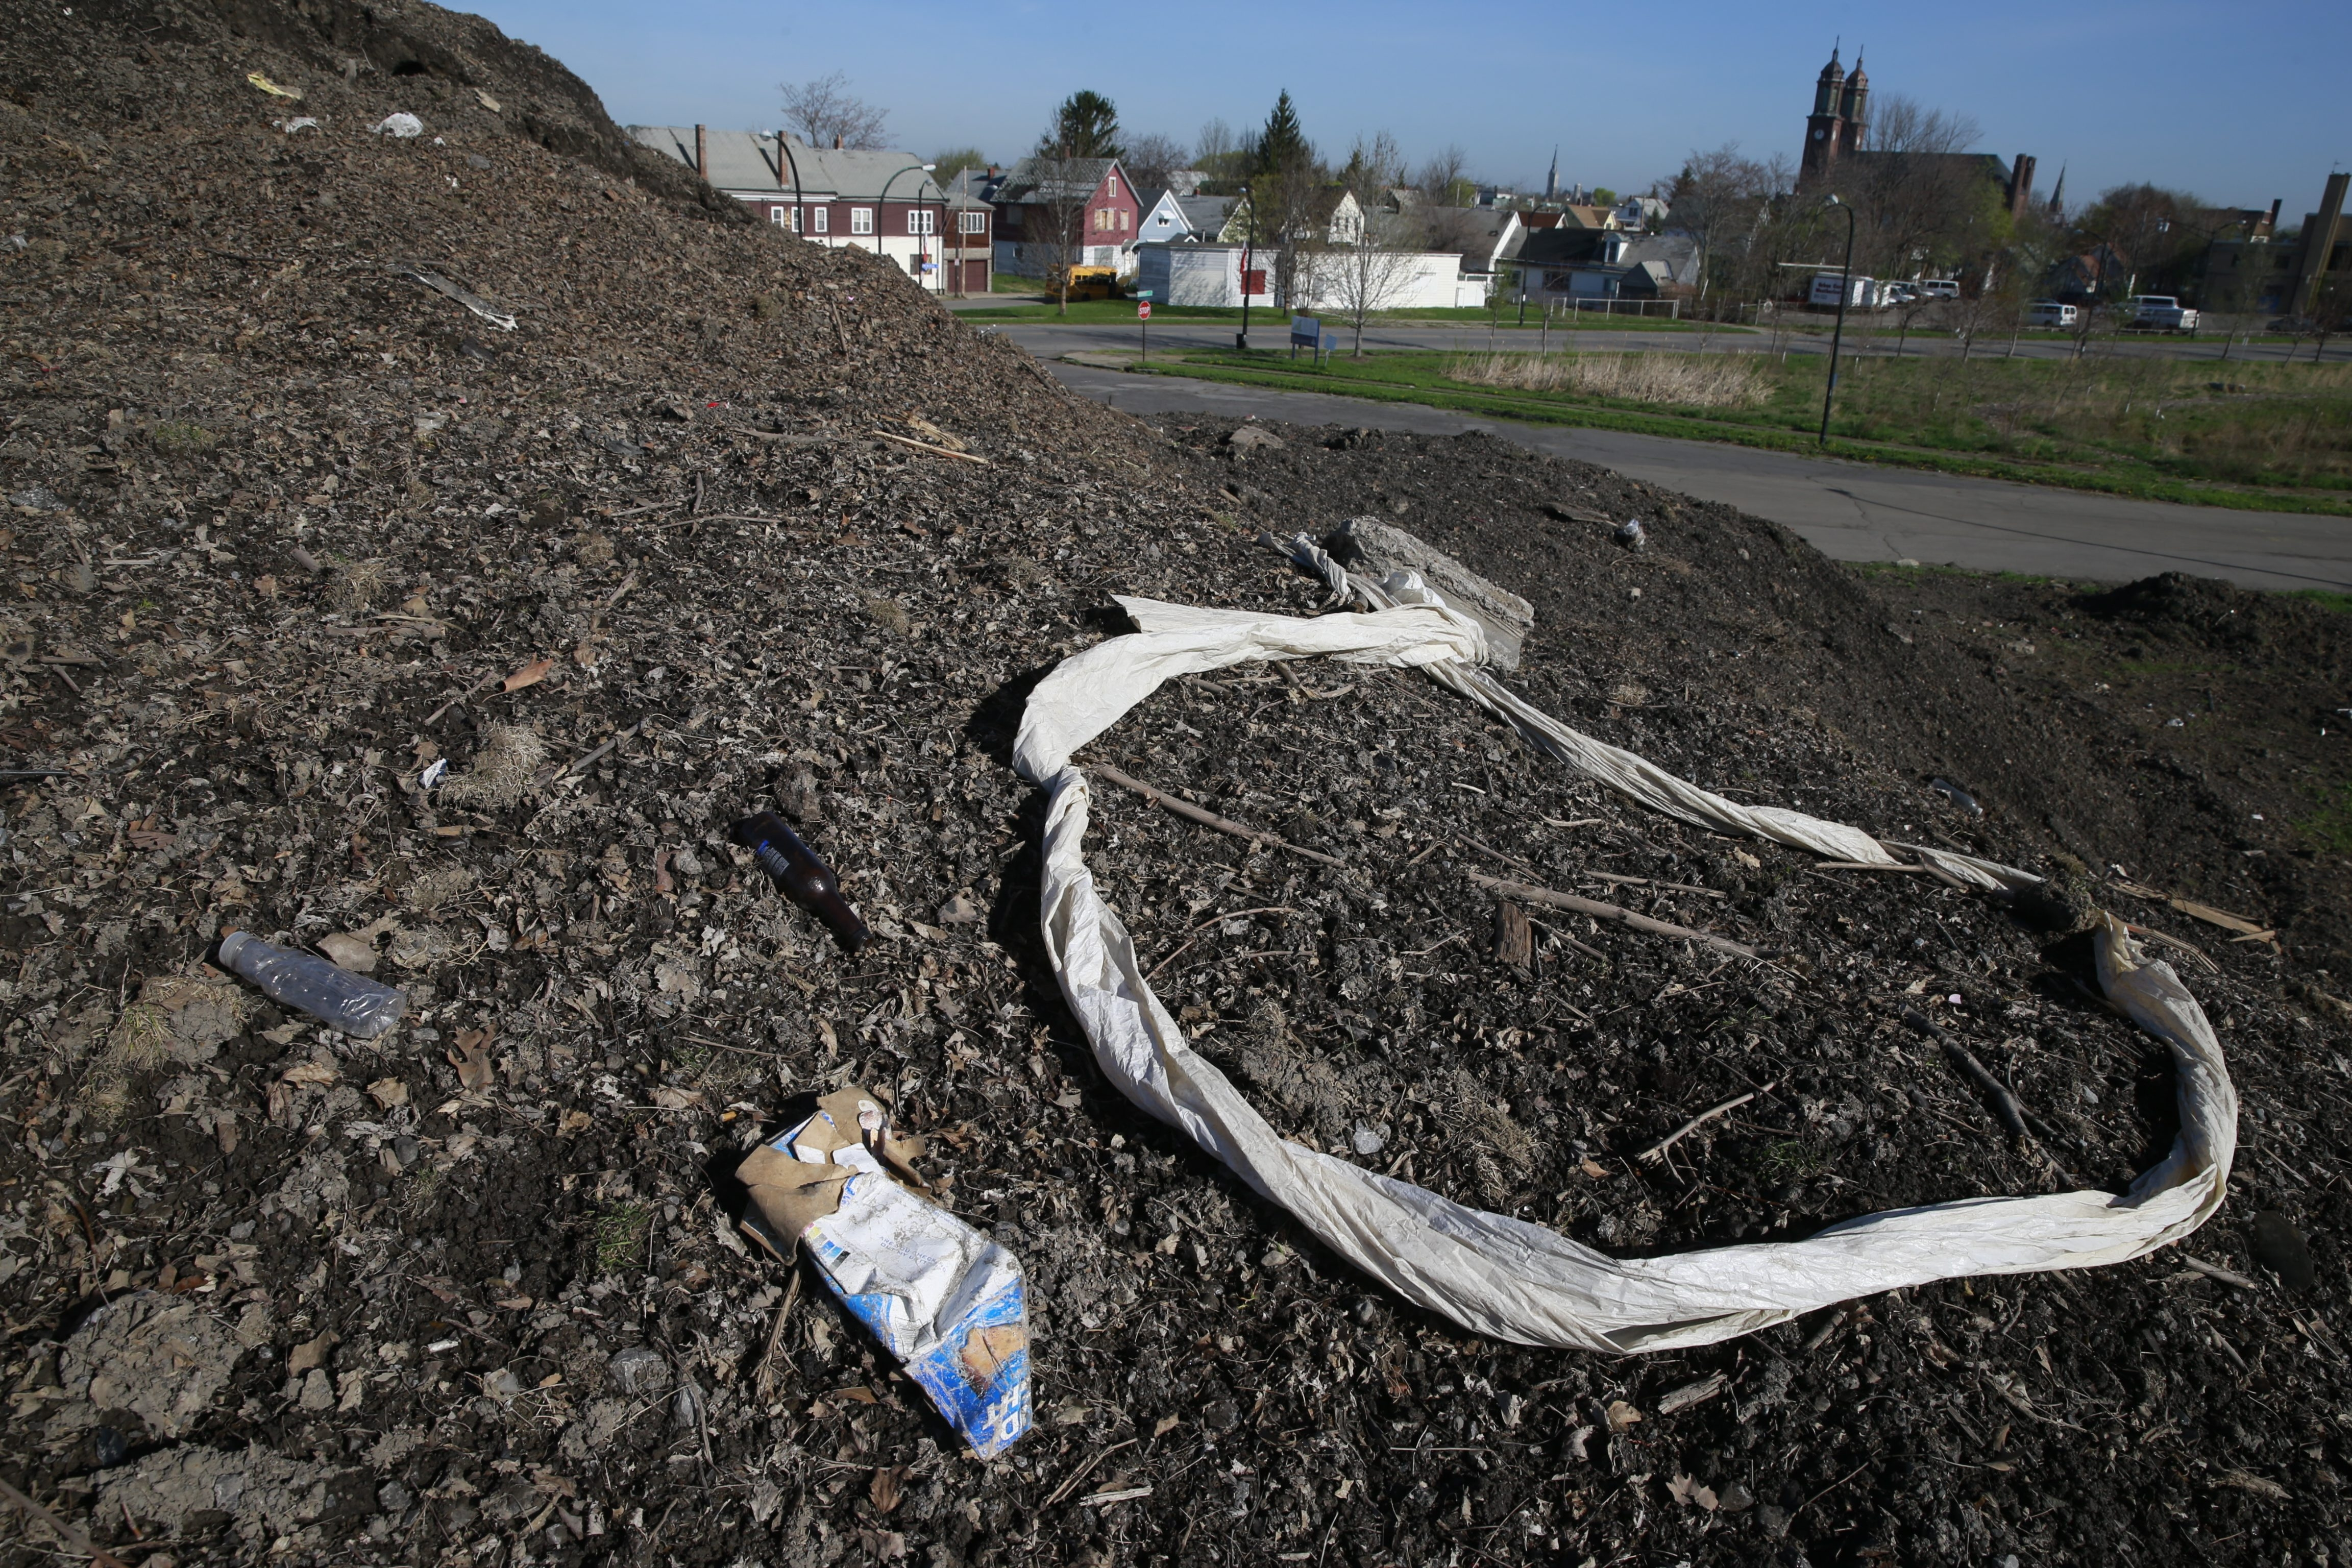 """After 11,000 truckloads of snow were dumped on five acres near the Central Terminal from last winter's megastorm, what's left are dirty mounds. Public works chief Steven J. Stepniak expects them to """"melt off when we get a couple of good rains and the temperature rises."""""""